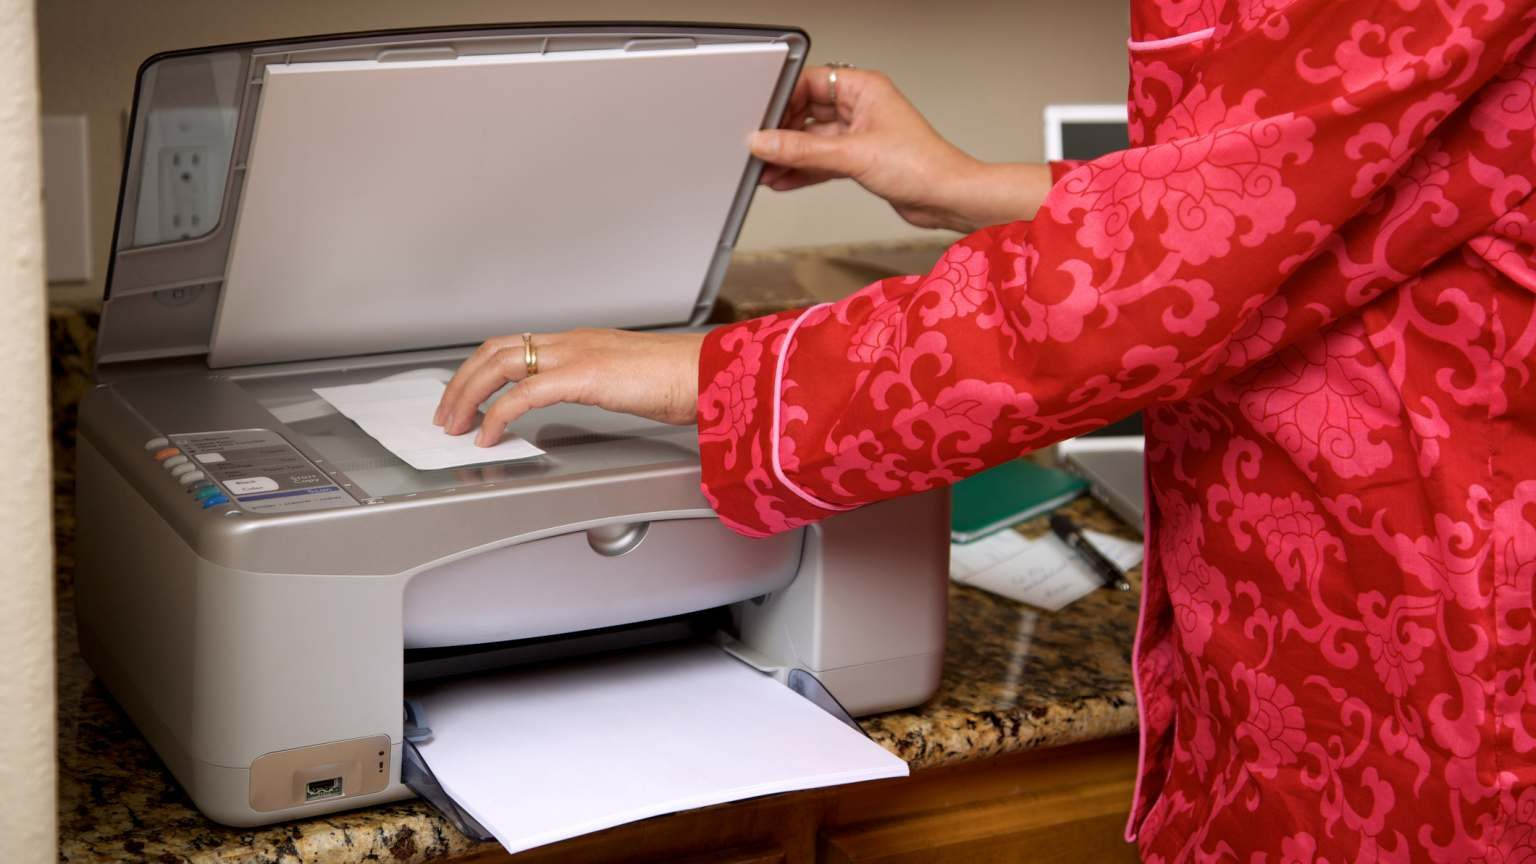 middle aged adult woman in pajamas early morning working with computer technology INSPECTOR: Shot prior to September 1 with appropriate model release/information attached)